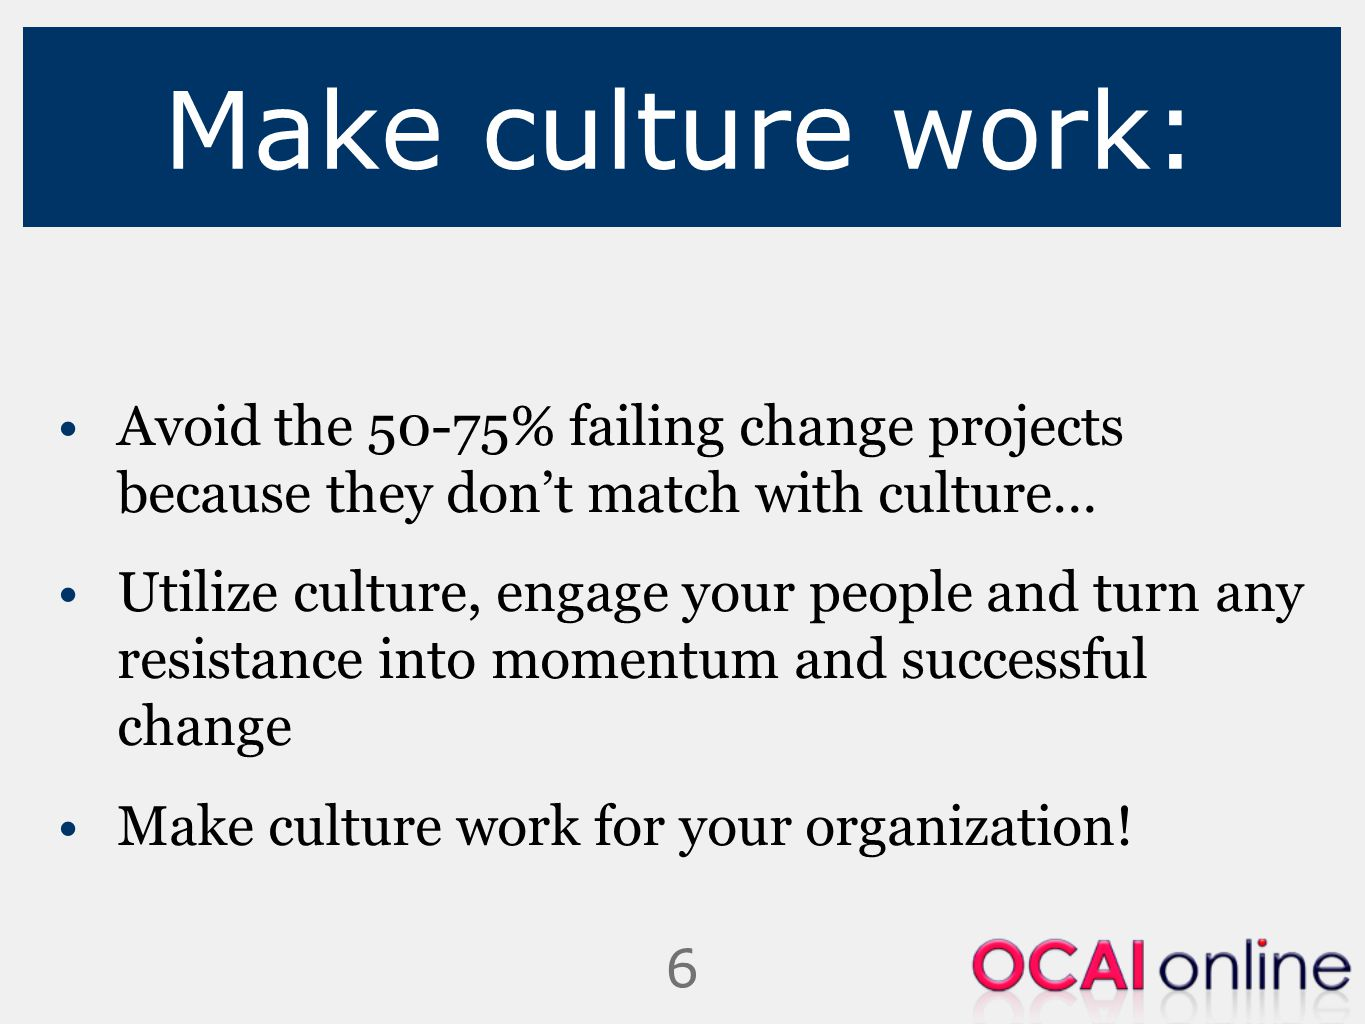 Make culture work: Avoid the 50-75% failing change projects because they don't match with culture…